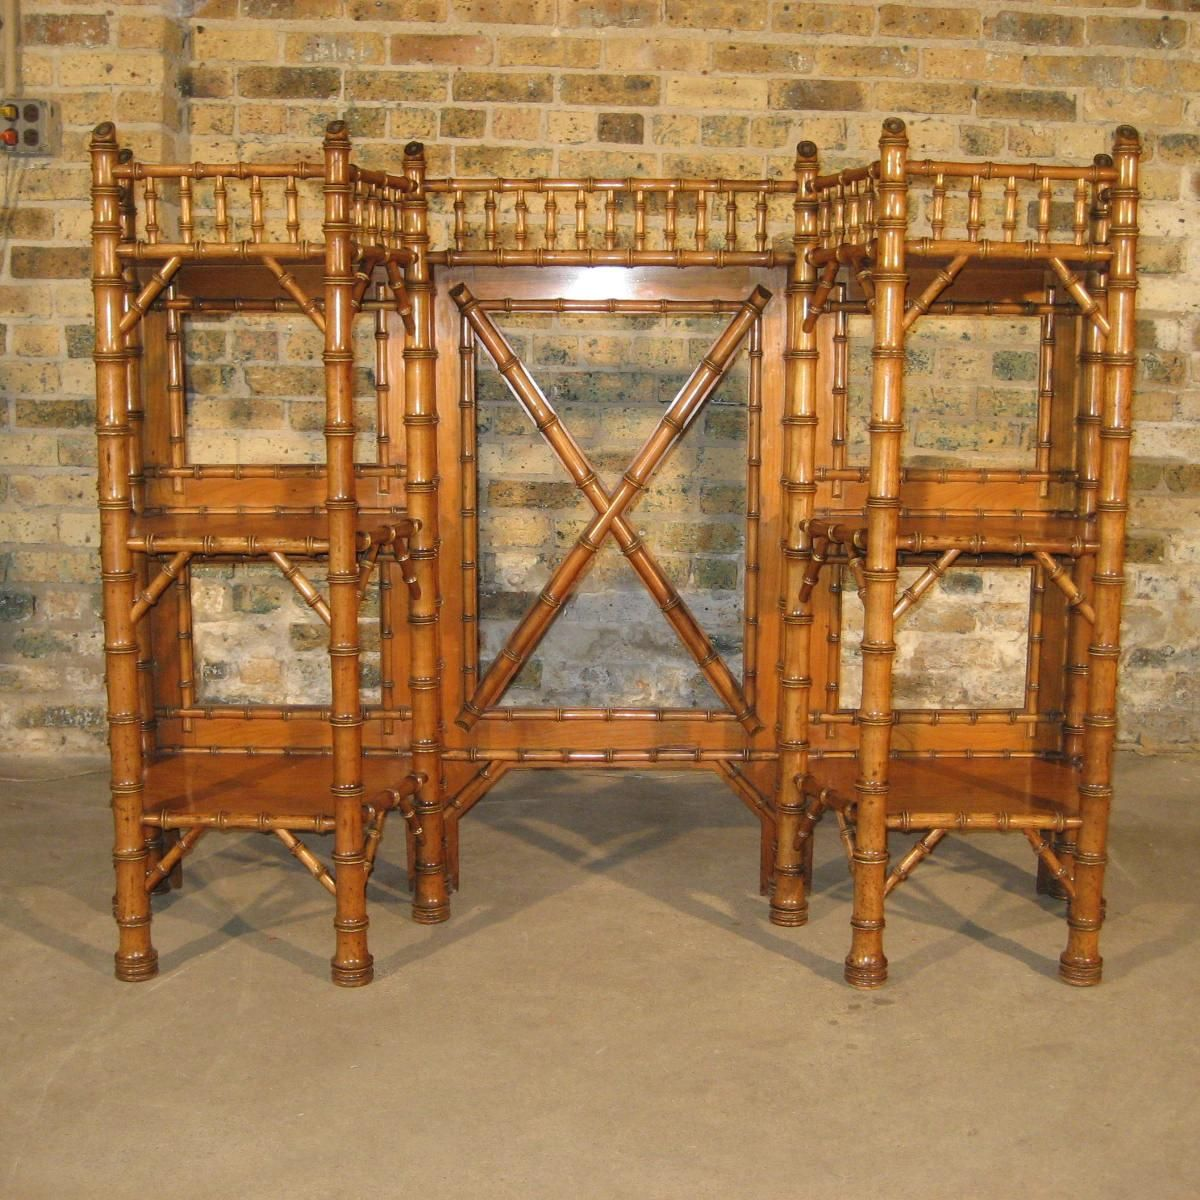 Antique Bamboo Furniture for Sale - Cool Furniture Ideas Check more at  http:// - Antique Bamboo Furniture For Sale - Cool Furniture Ideas Check More